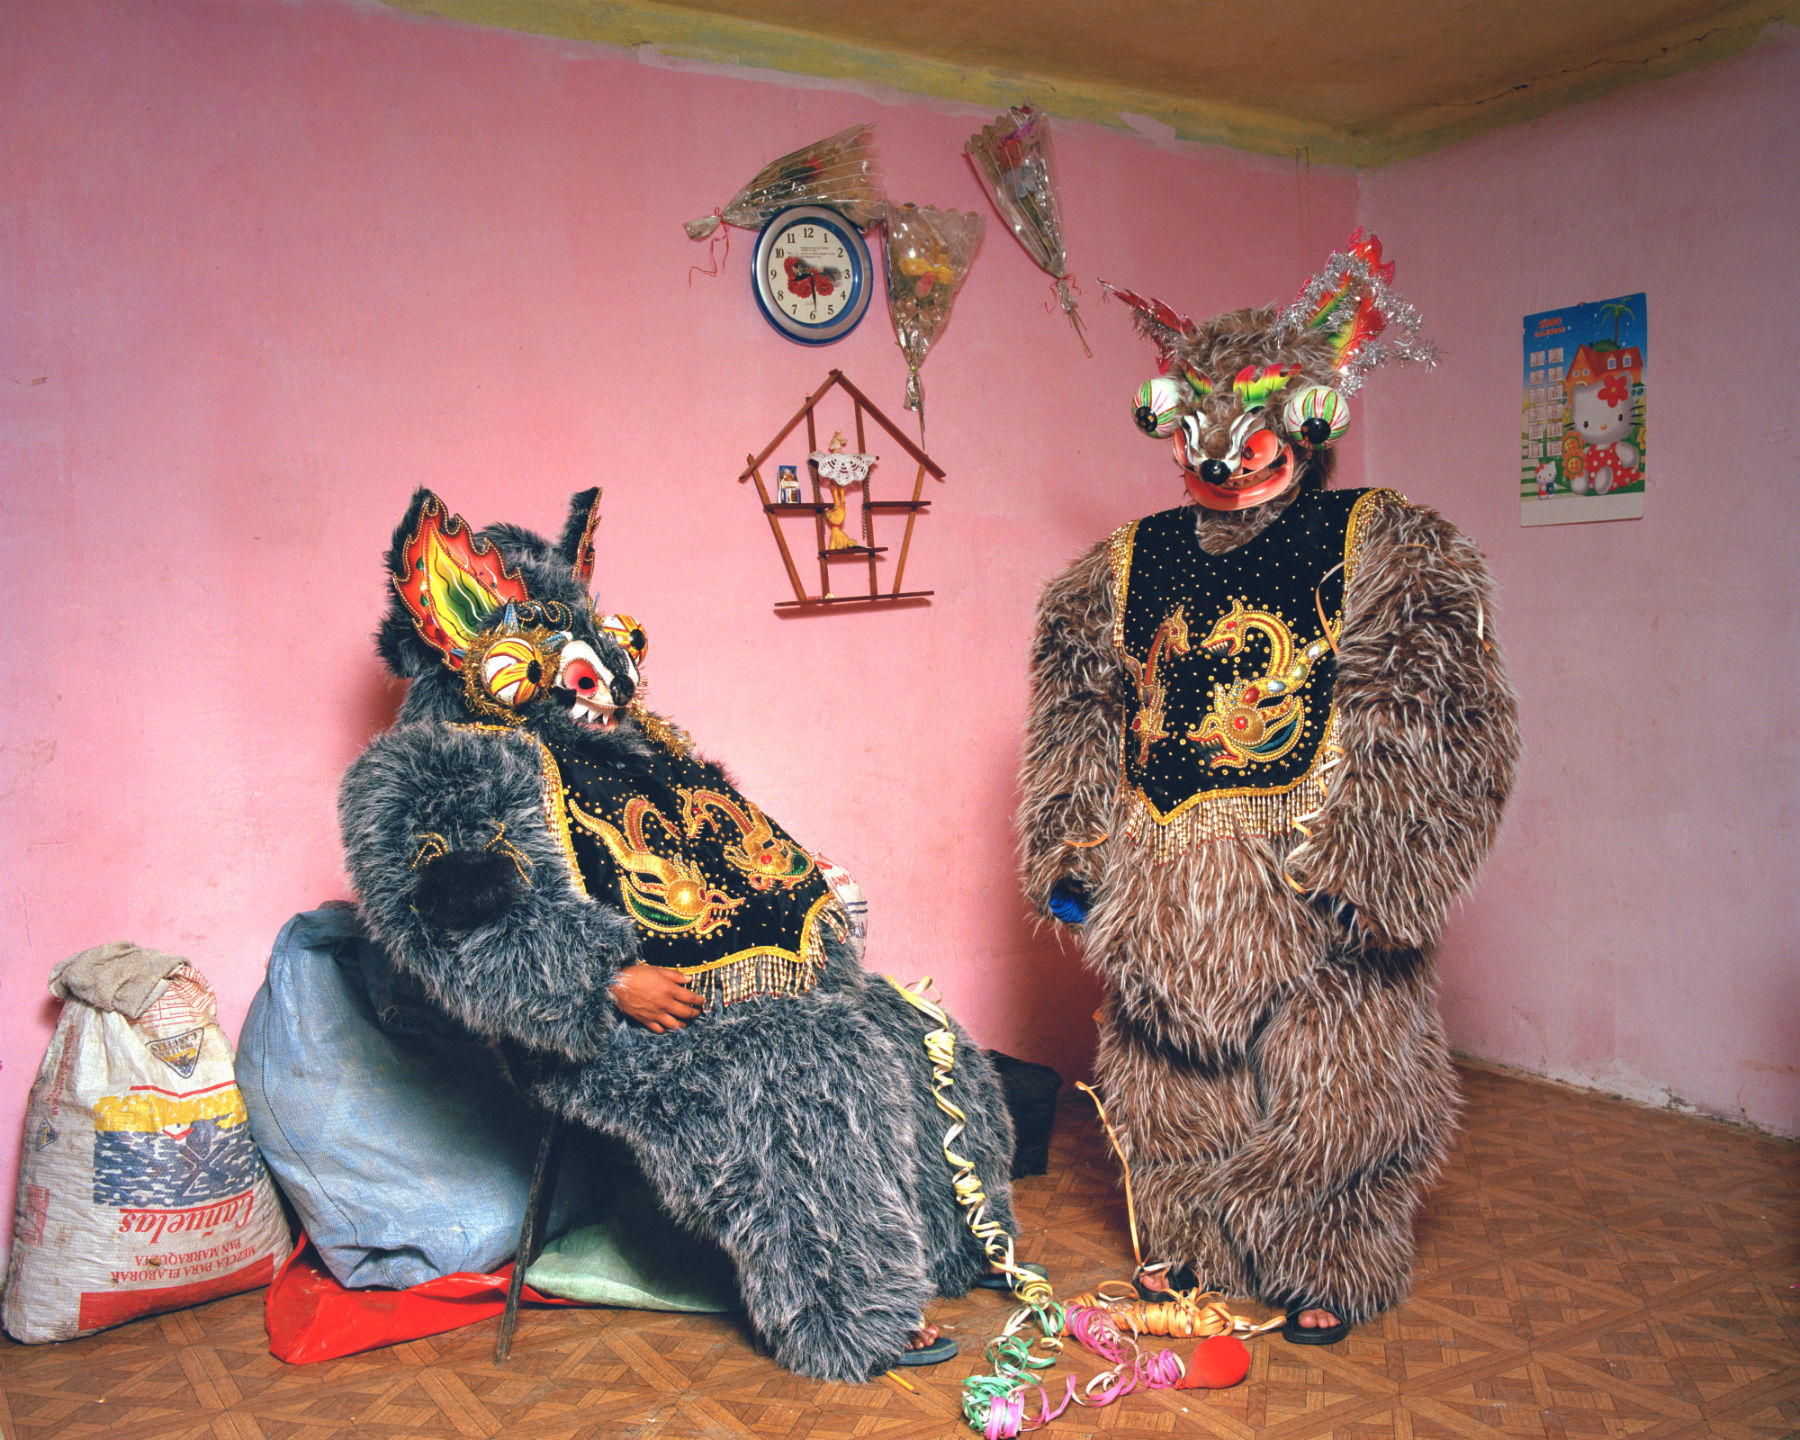 Photographing Bolivia's Shaman Doctors